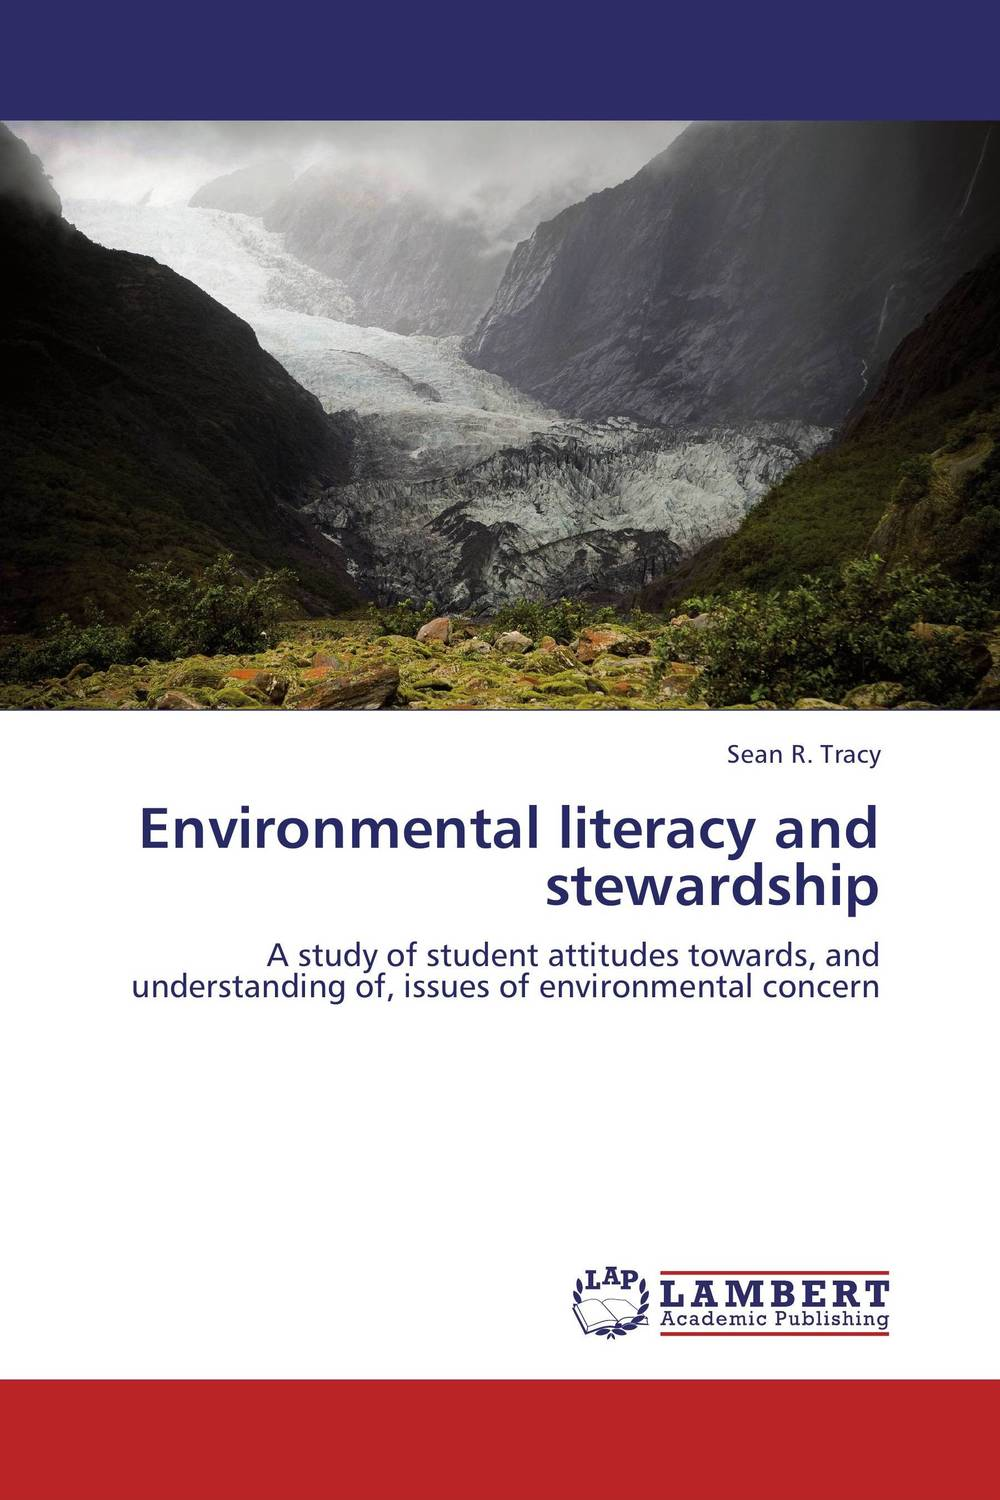 Environmental literacy and stewardship peter block stewardship choosing service over self interest